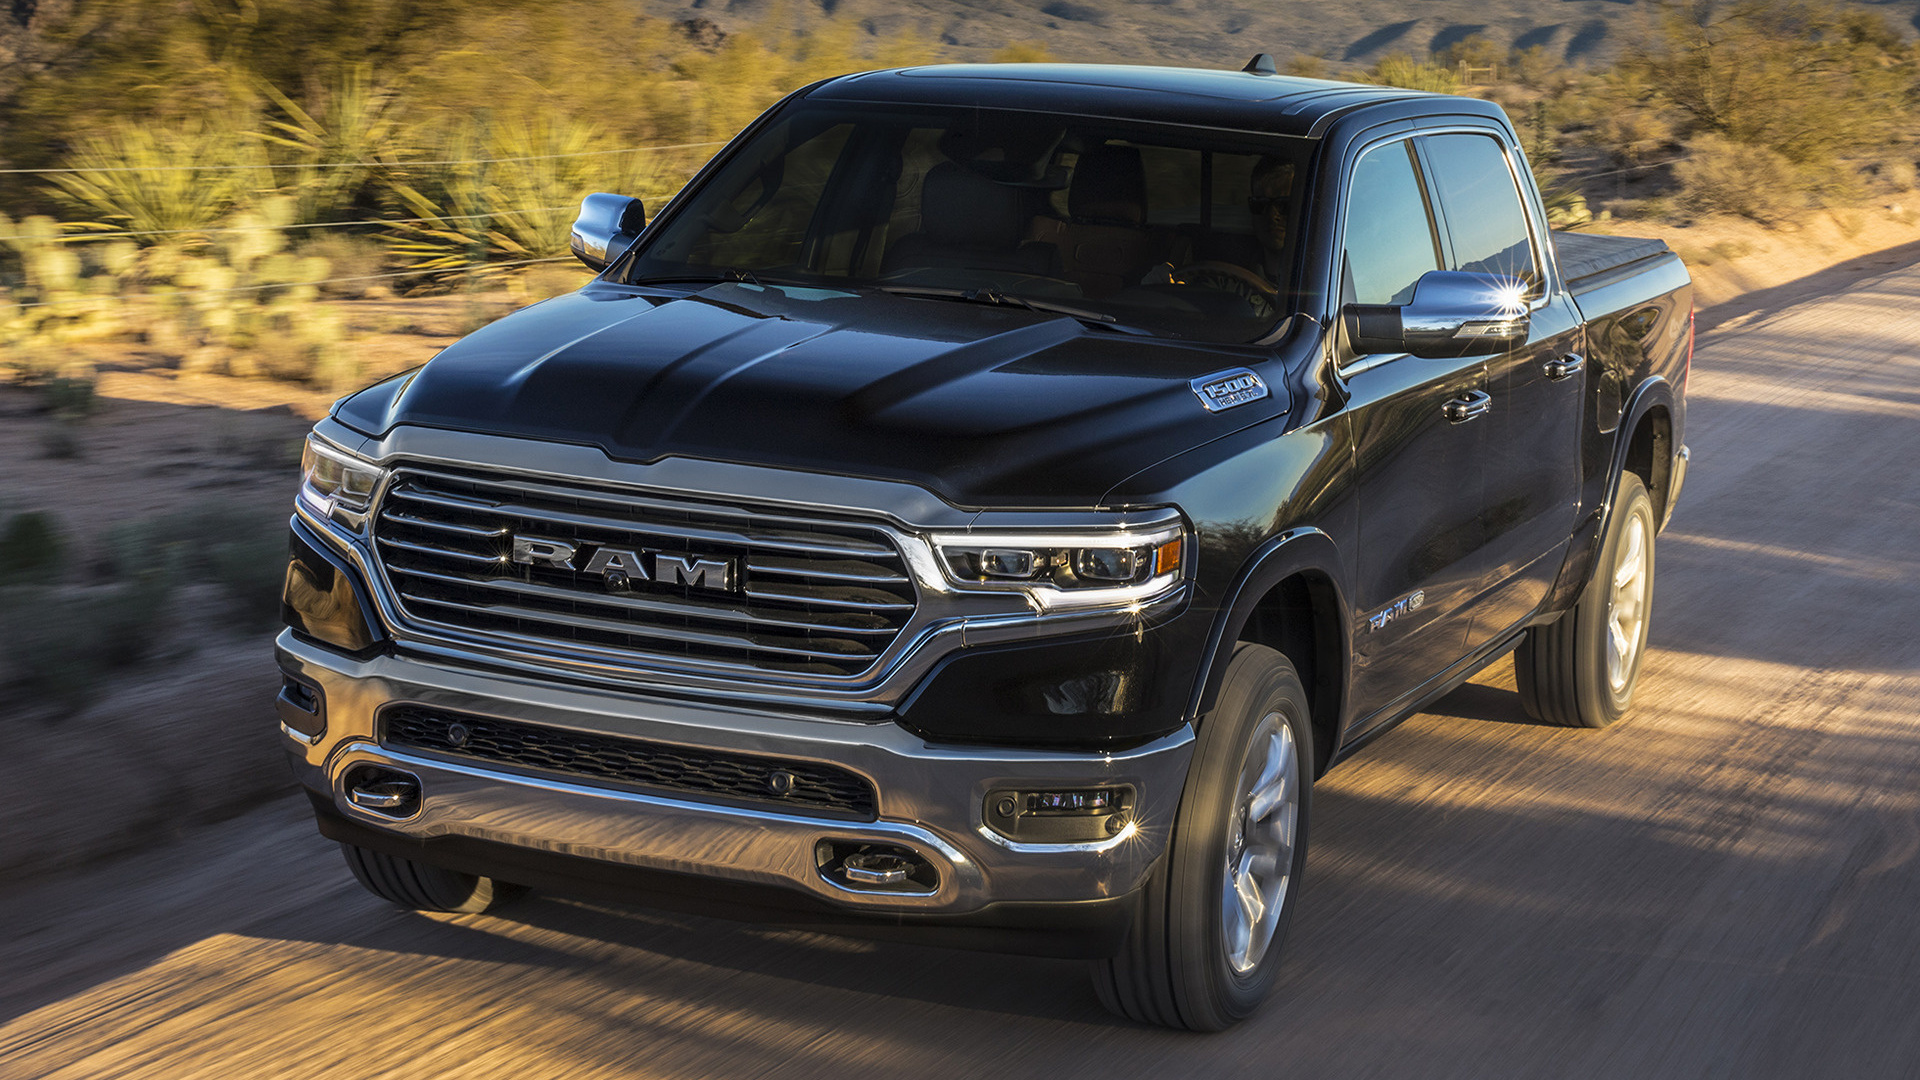 Dodge Big Horn >> 2019 Ram 1500 Laramie Longhorn Crew Cab Off-Road Package [Short] - Wallpapers and HD Images ...